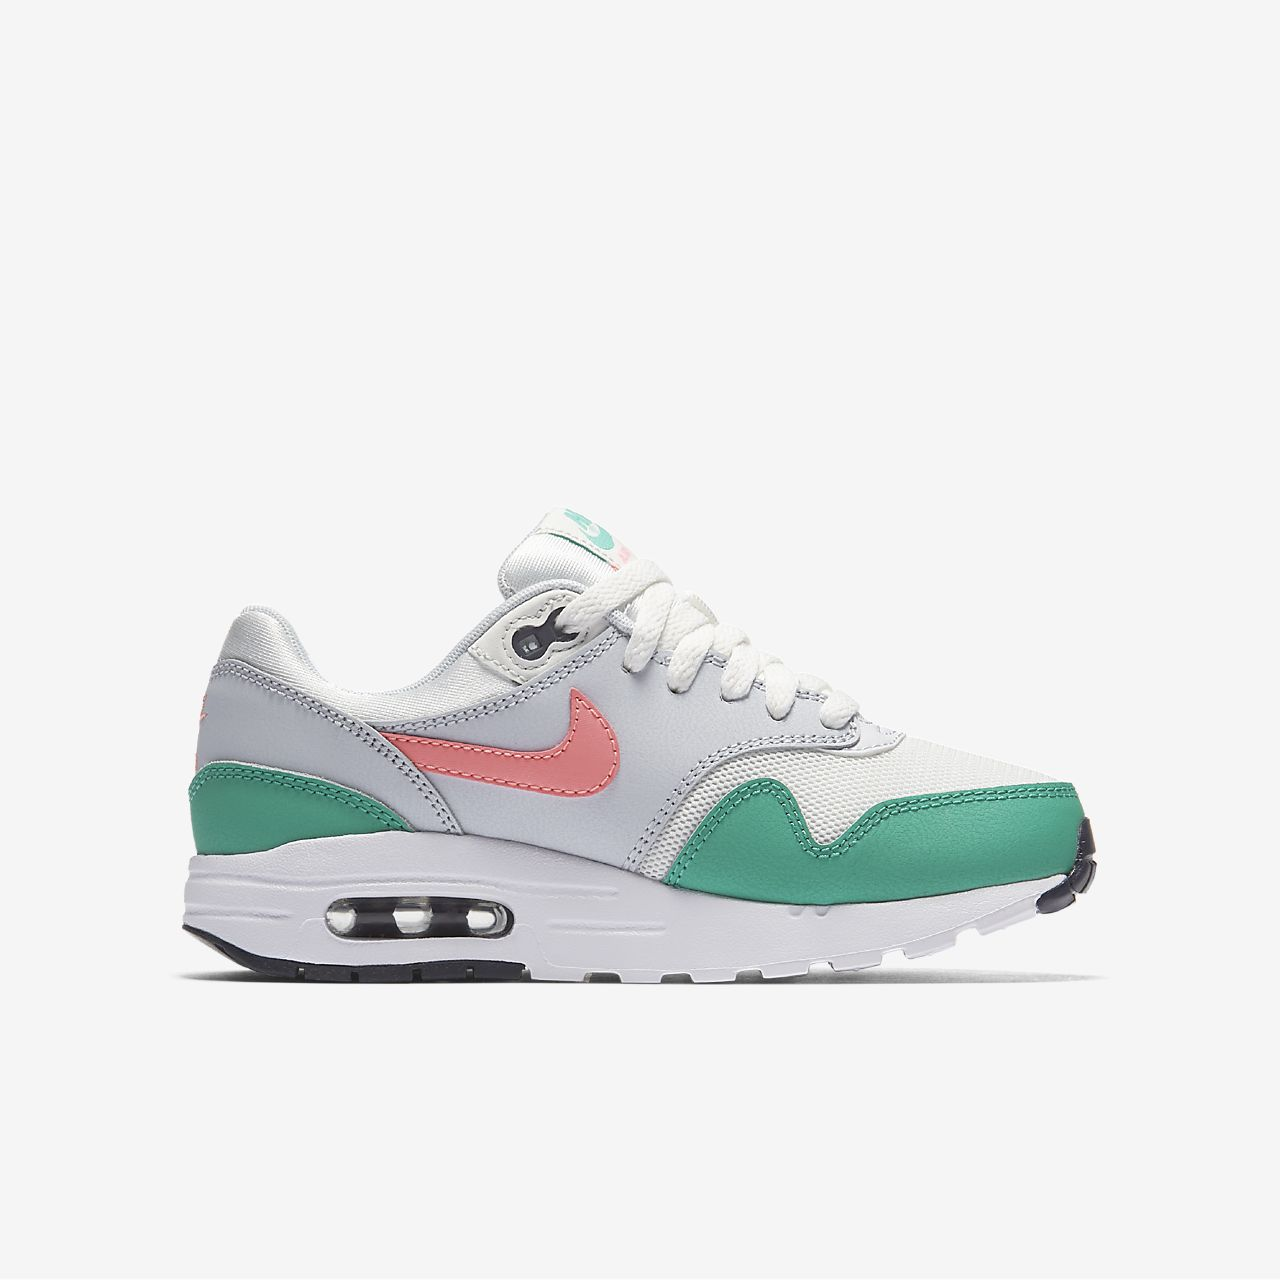 new arrivals 113c7 73102 Nike Air Max 1 Older Kids Shoe  NIKE TUNED AIR TN1 SUNSET (kids) now  available at Foot Locker . ...